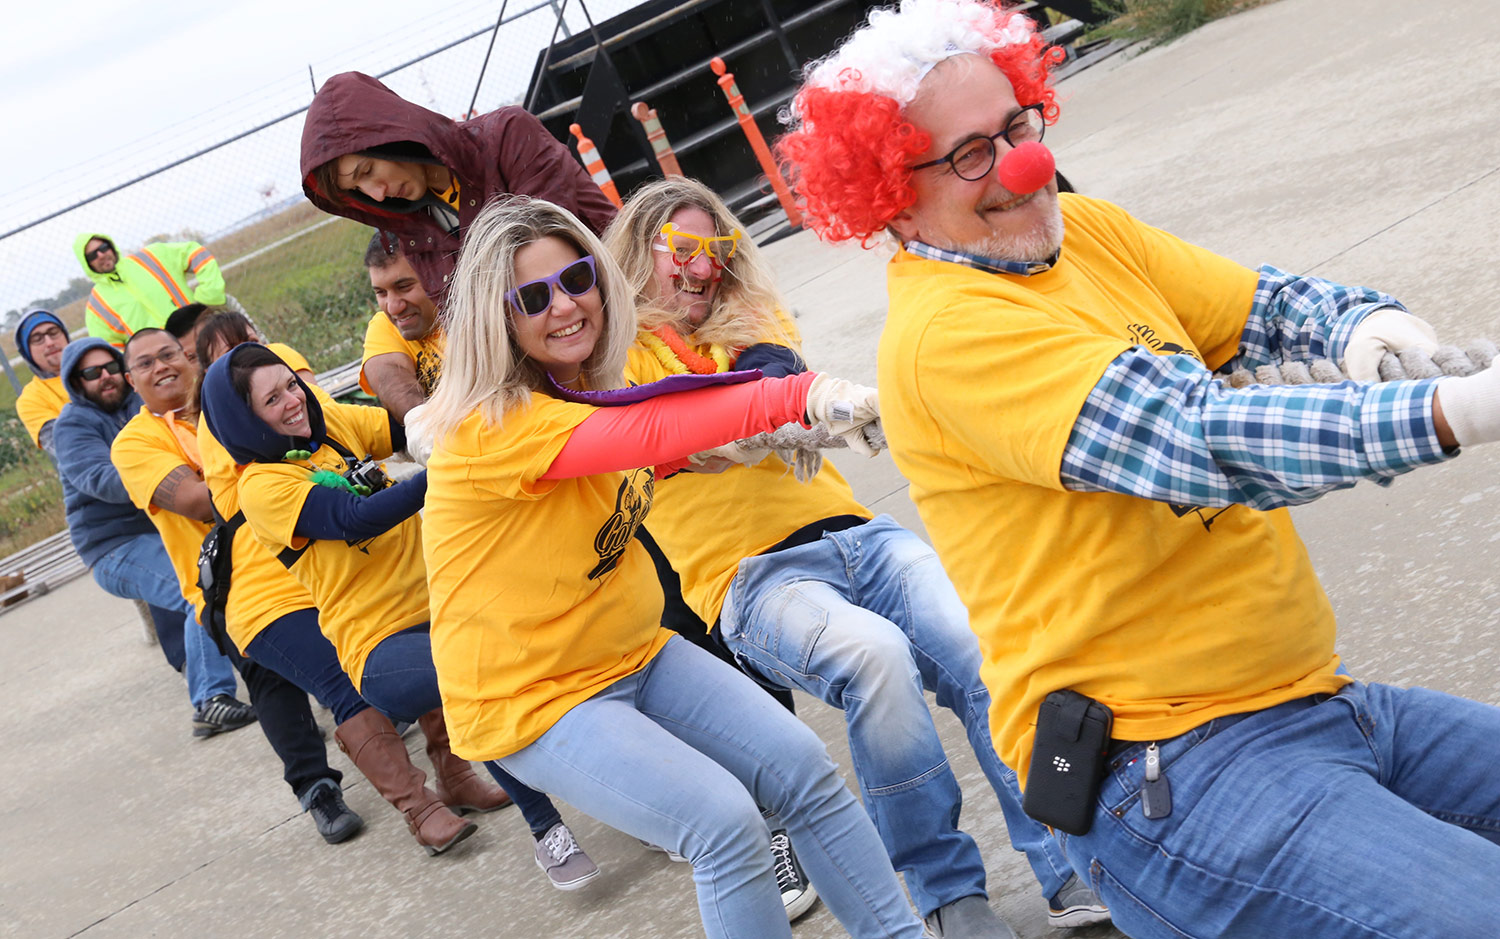 Have fun at United Way Winnipeg's Plane Pull & city-wide kickoff!